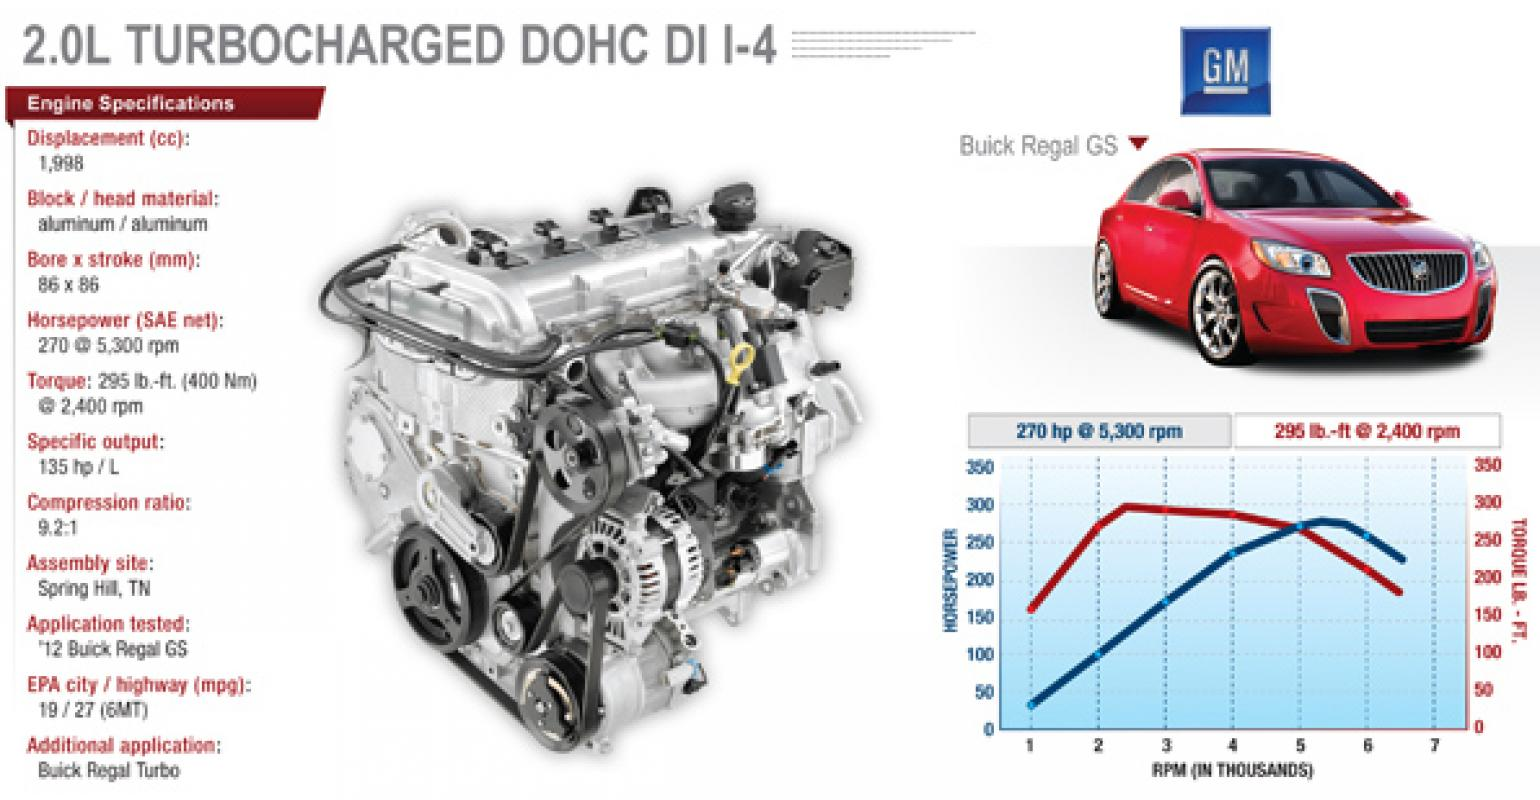 hight resolution of buick regal gs turbo beats everyone in output